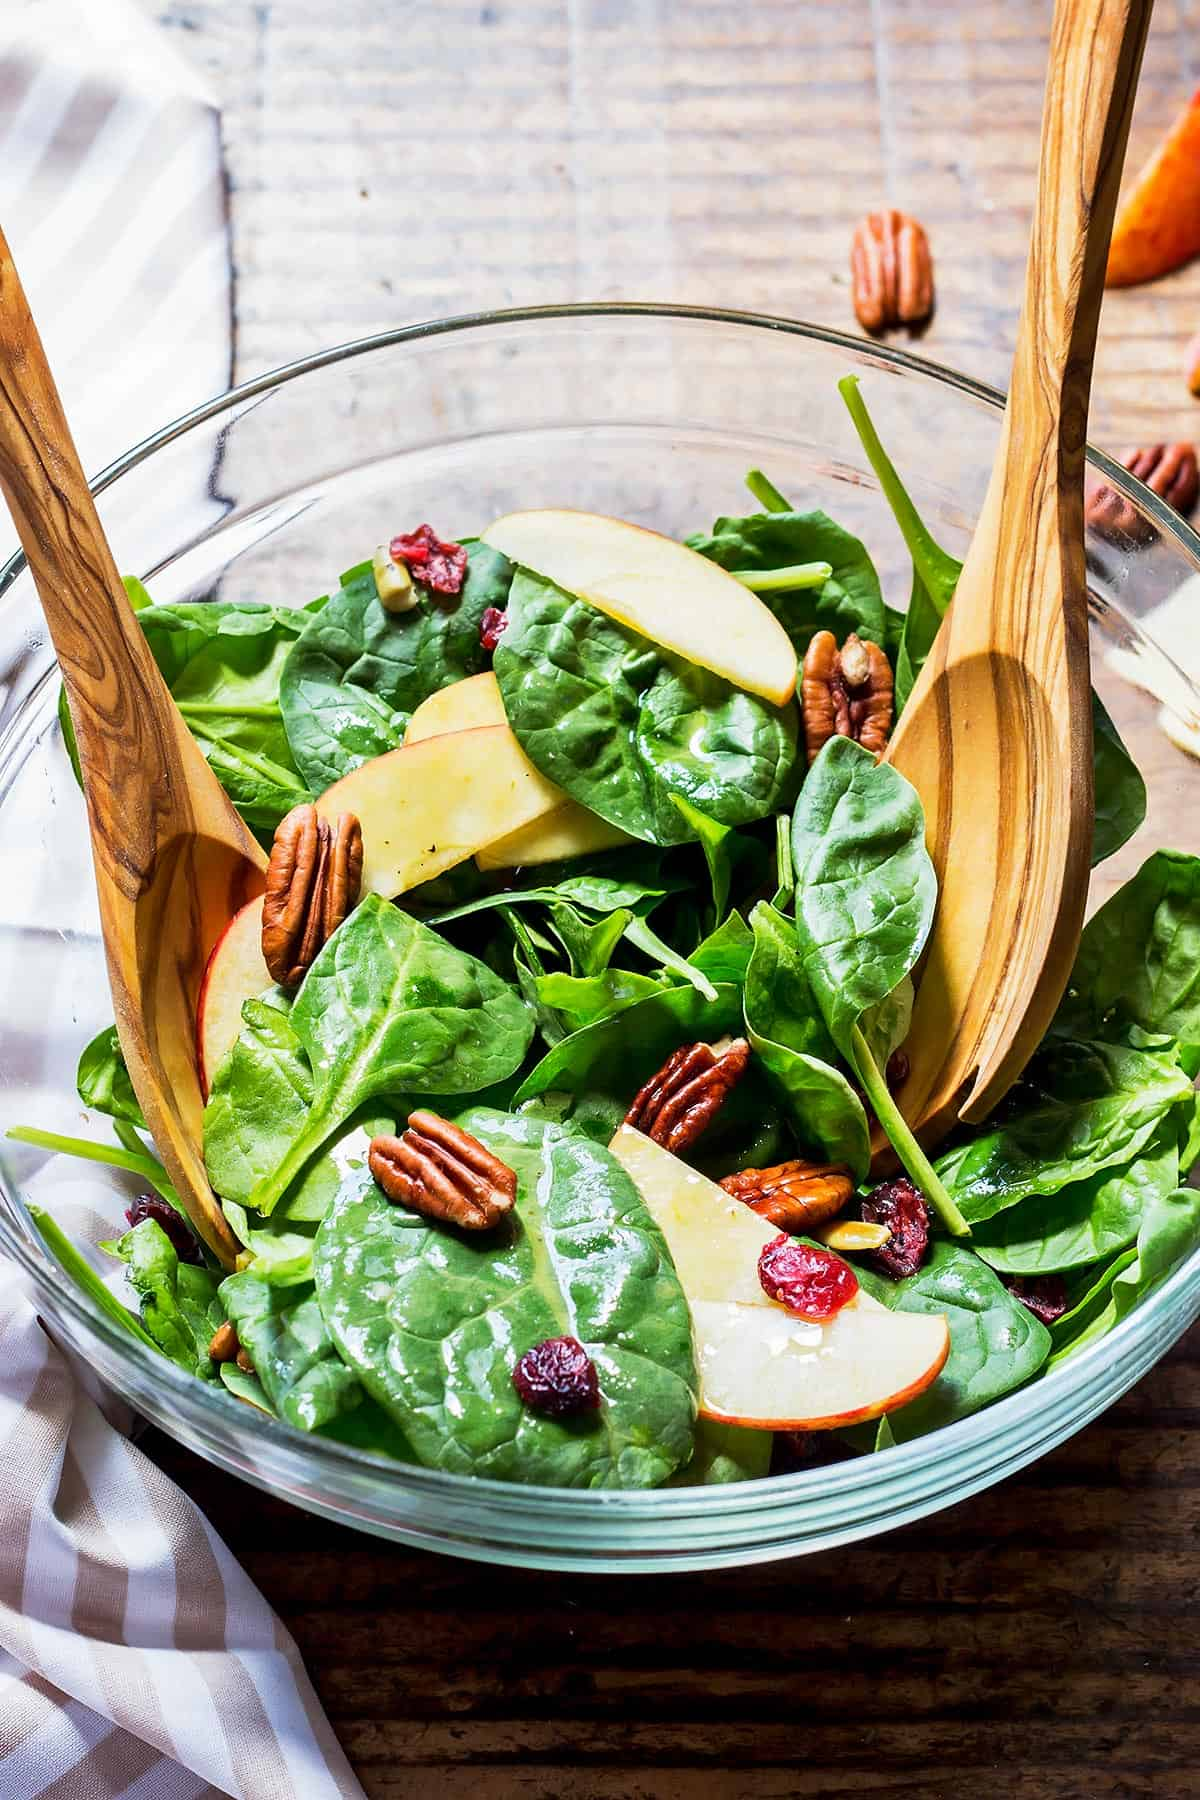 Harvest Spinach Salad in glass bowl with olive wood utensils